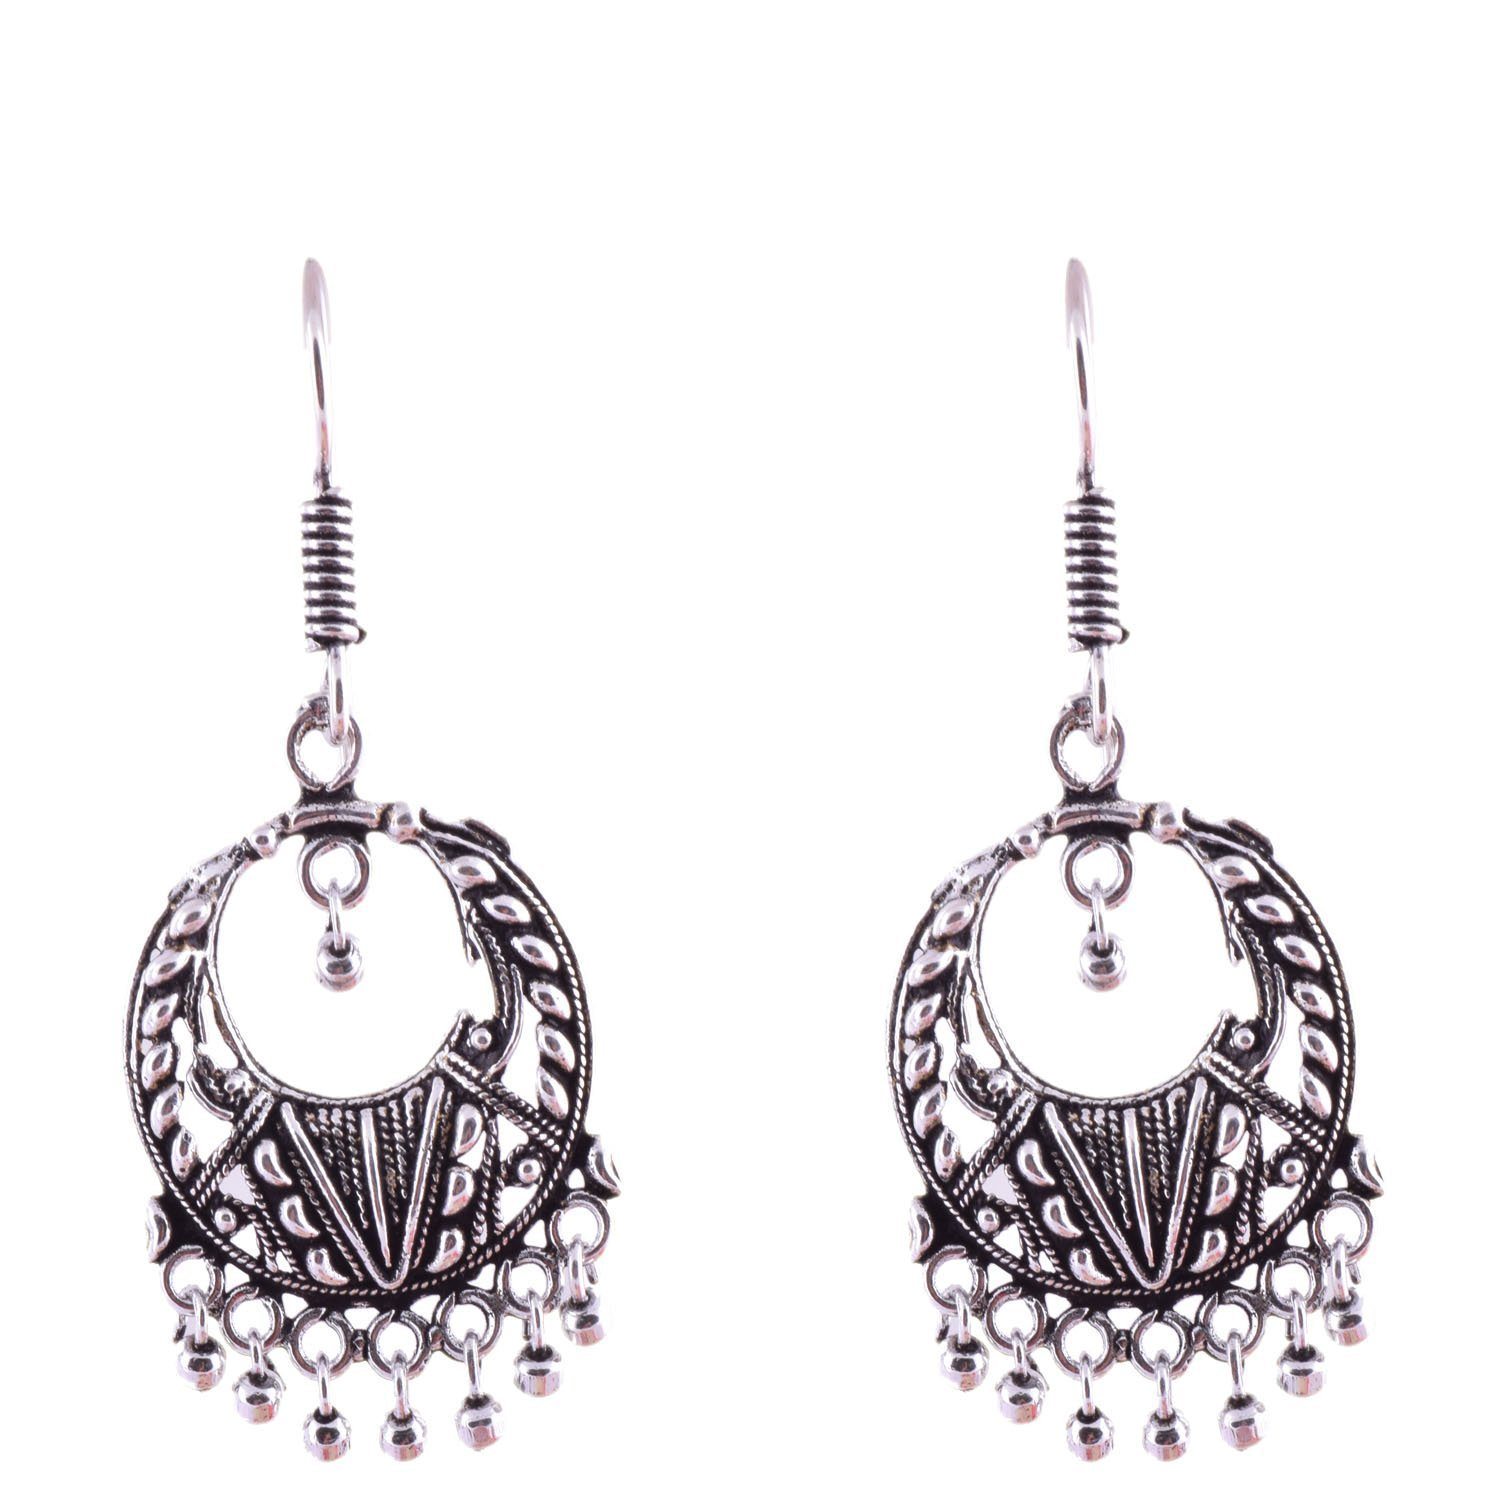 Subharpit Light Weight Oxidized Silver Indian Dangle /& Drop Earring for Women /& Girls